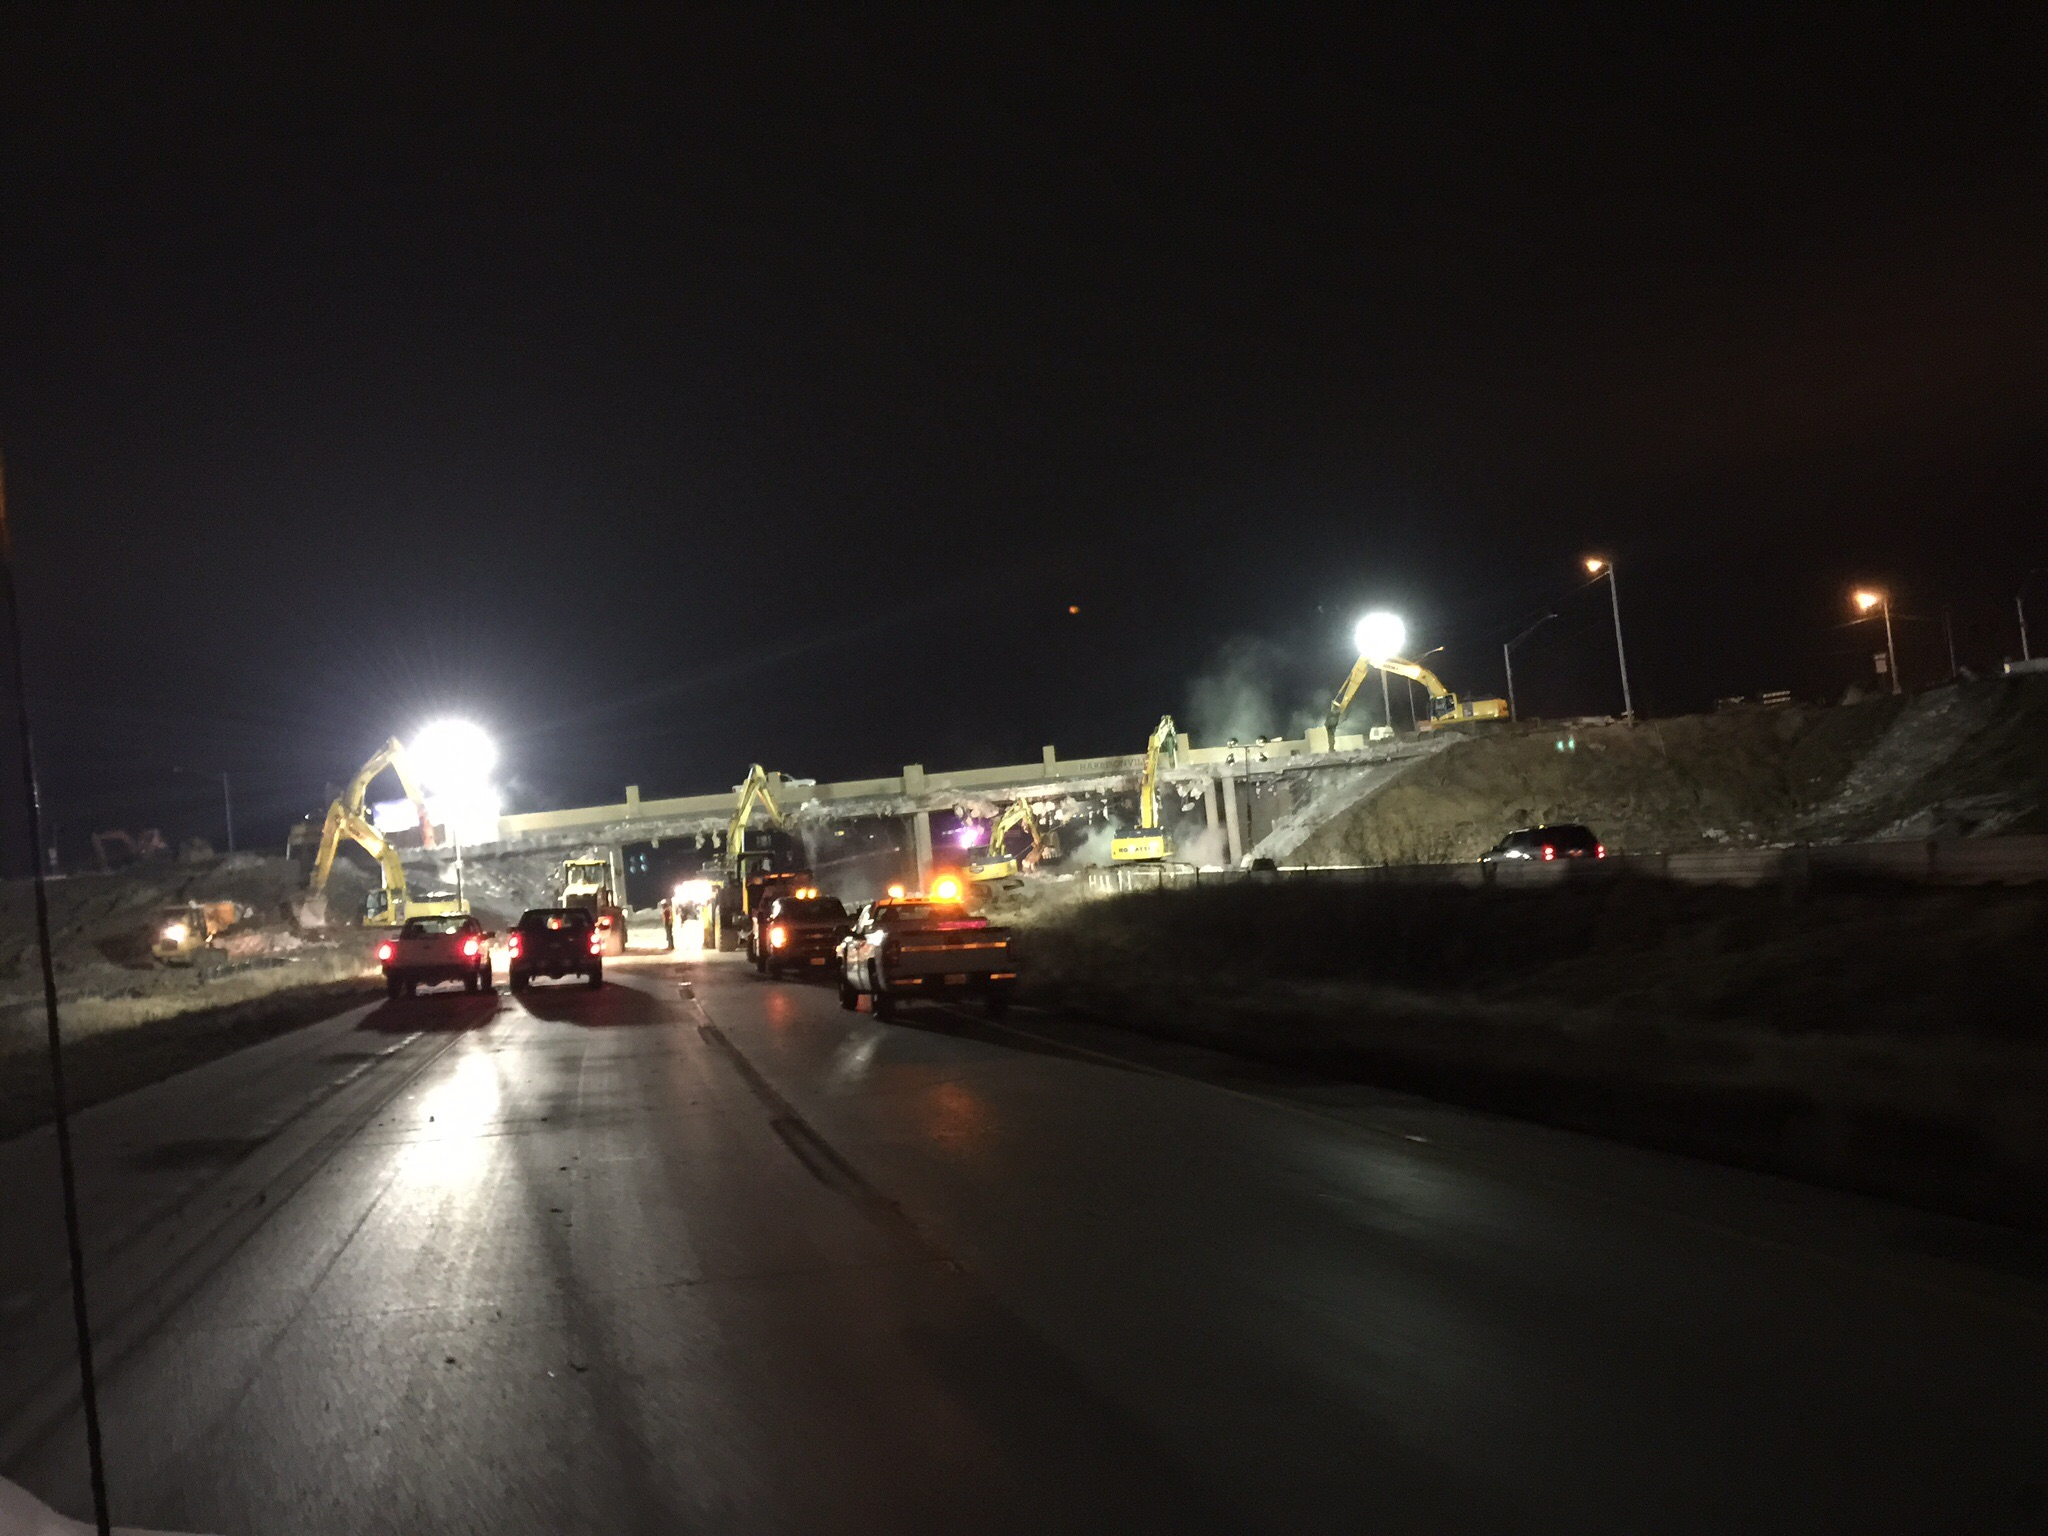 Rte. 291 Bridge Demo over I-49, Harrisonville, MO